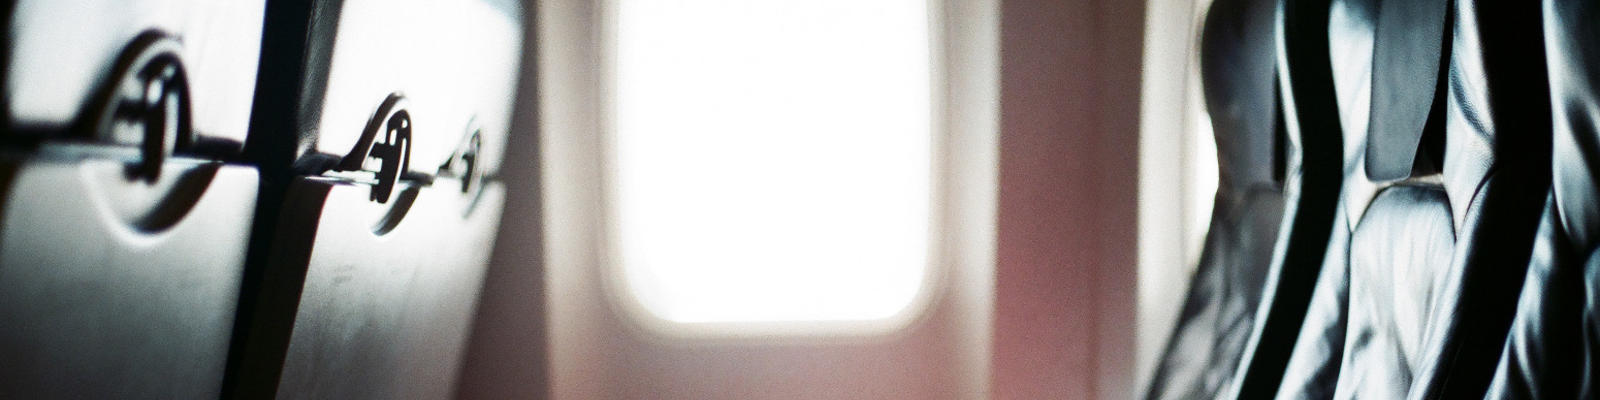 A row of seats on an airplane with sunlight coming in from the window